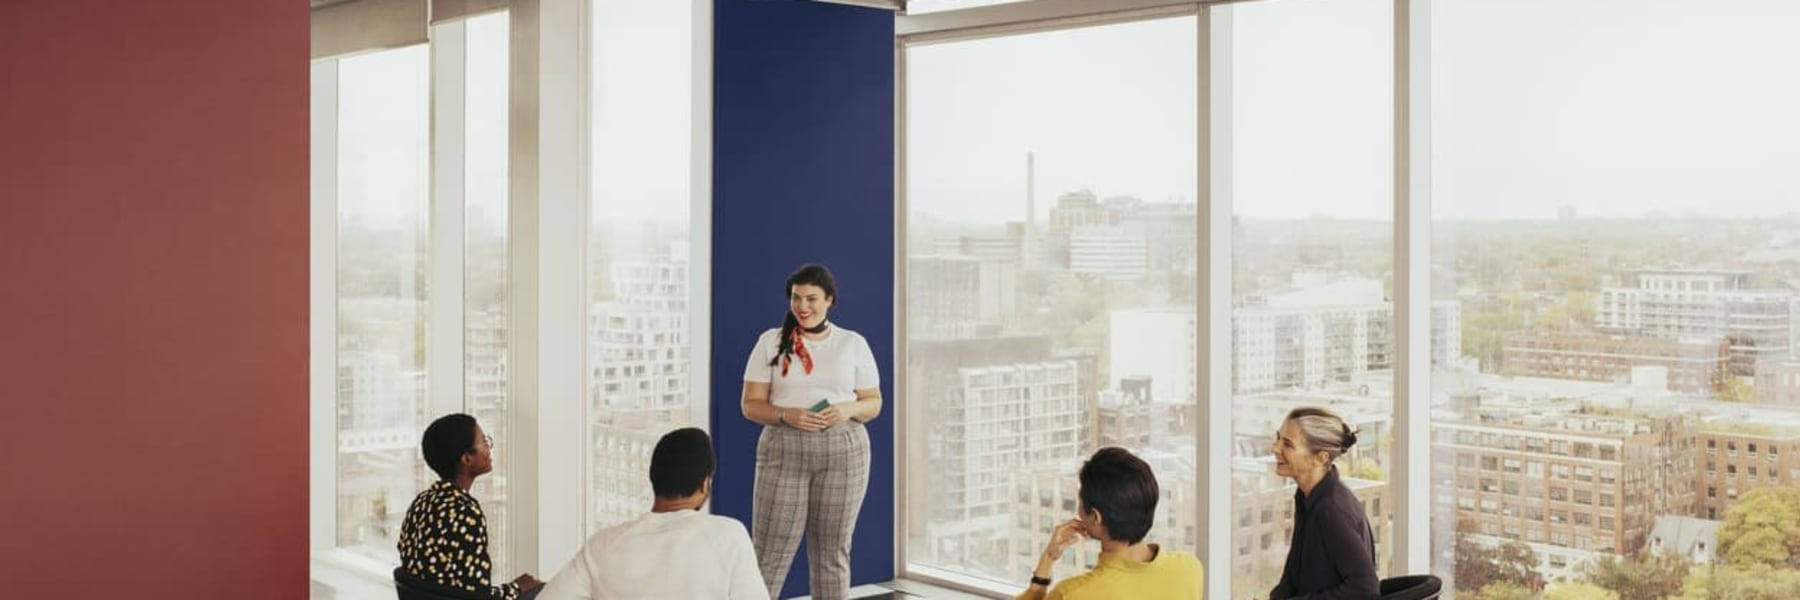 A woman standing in front of her colleagues sitting in a semi-circle makes a presentation in a Breather space with a great view of the city